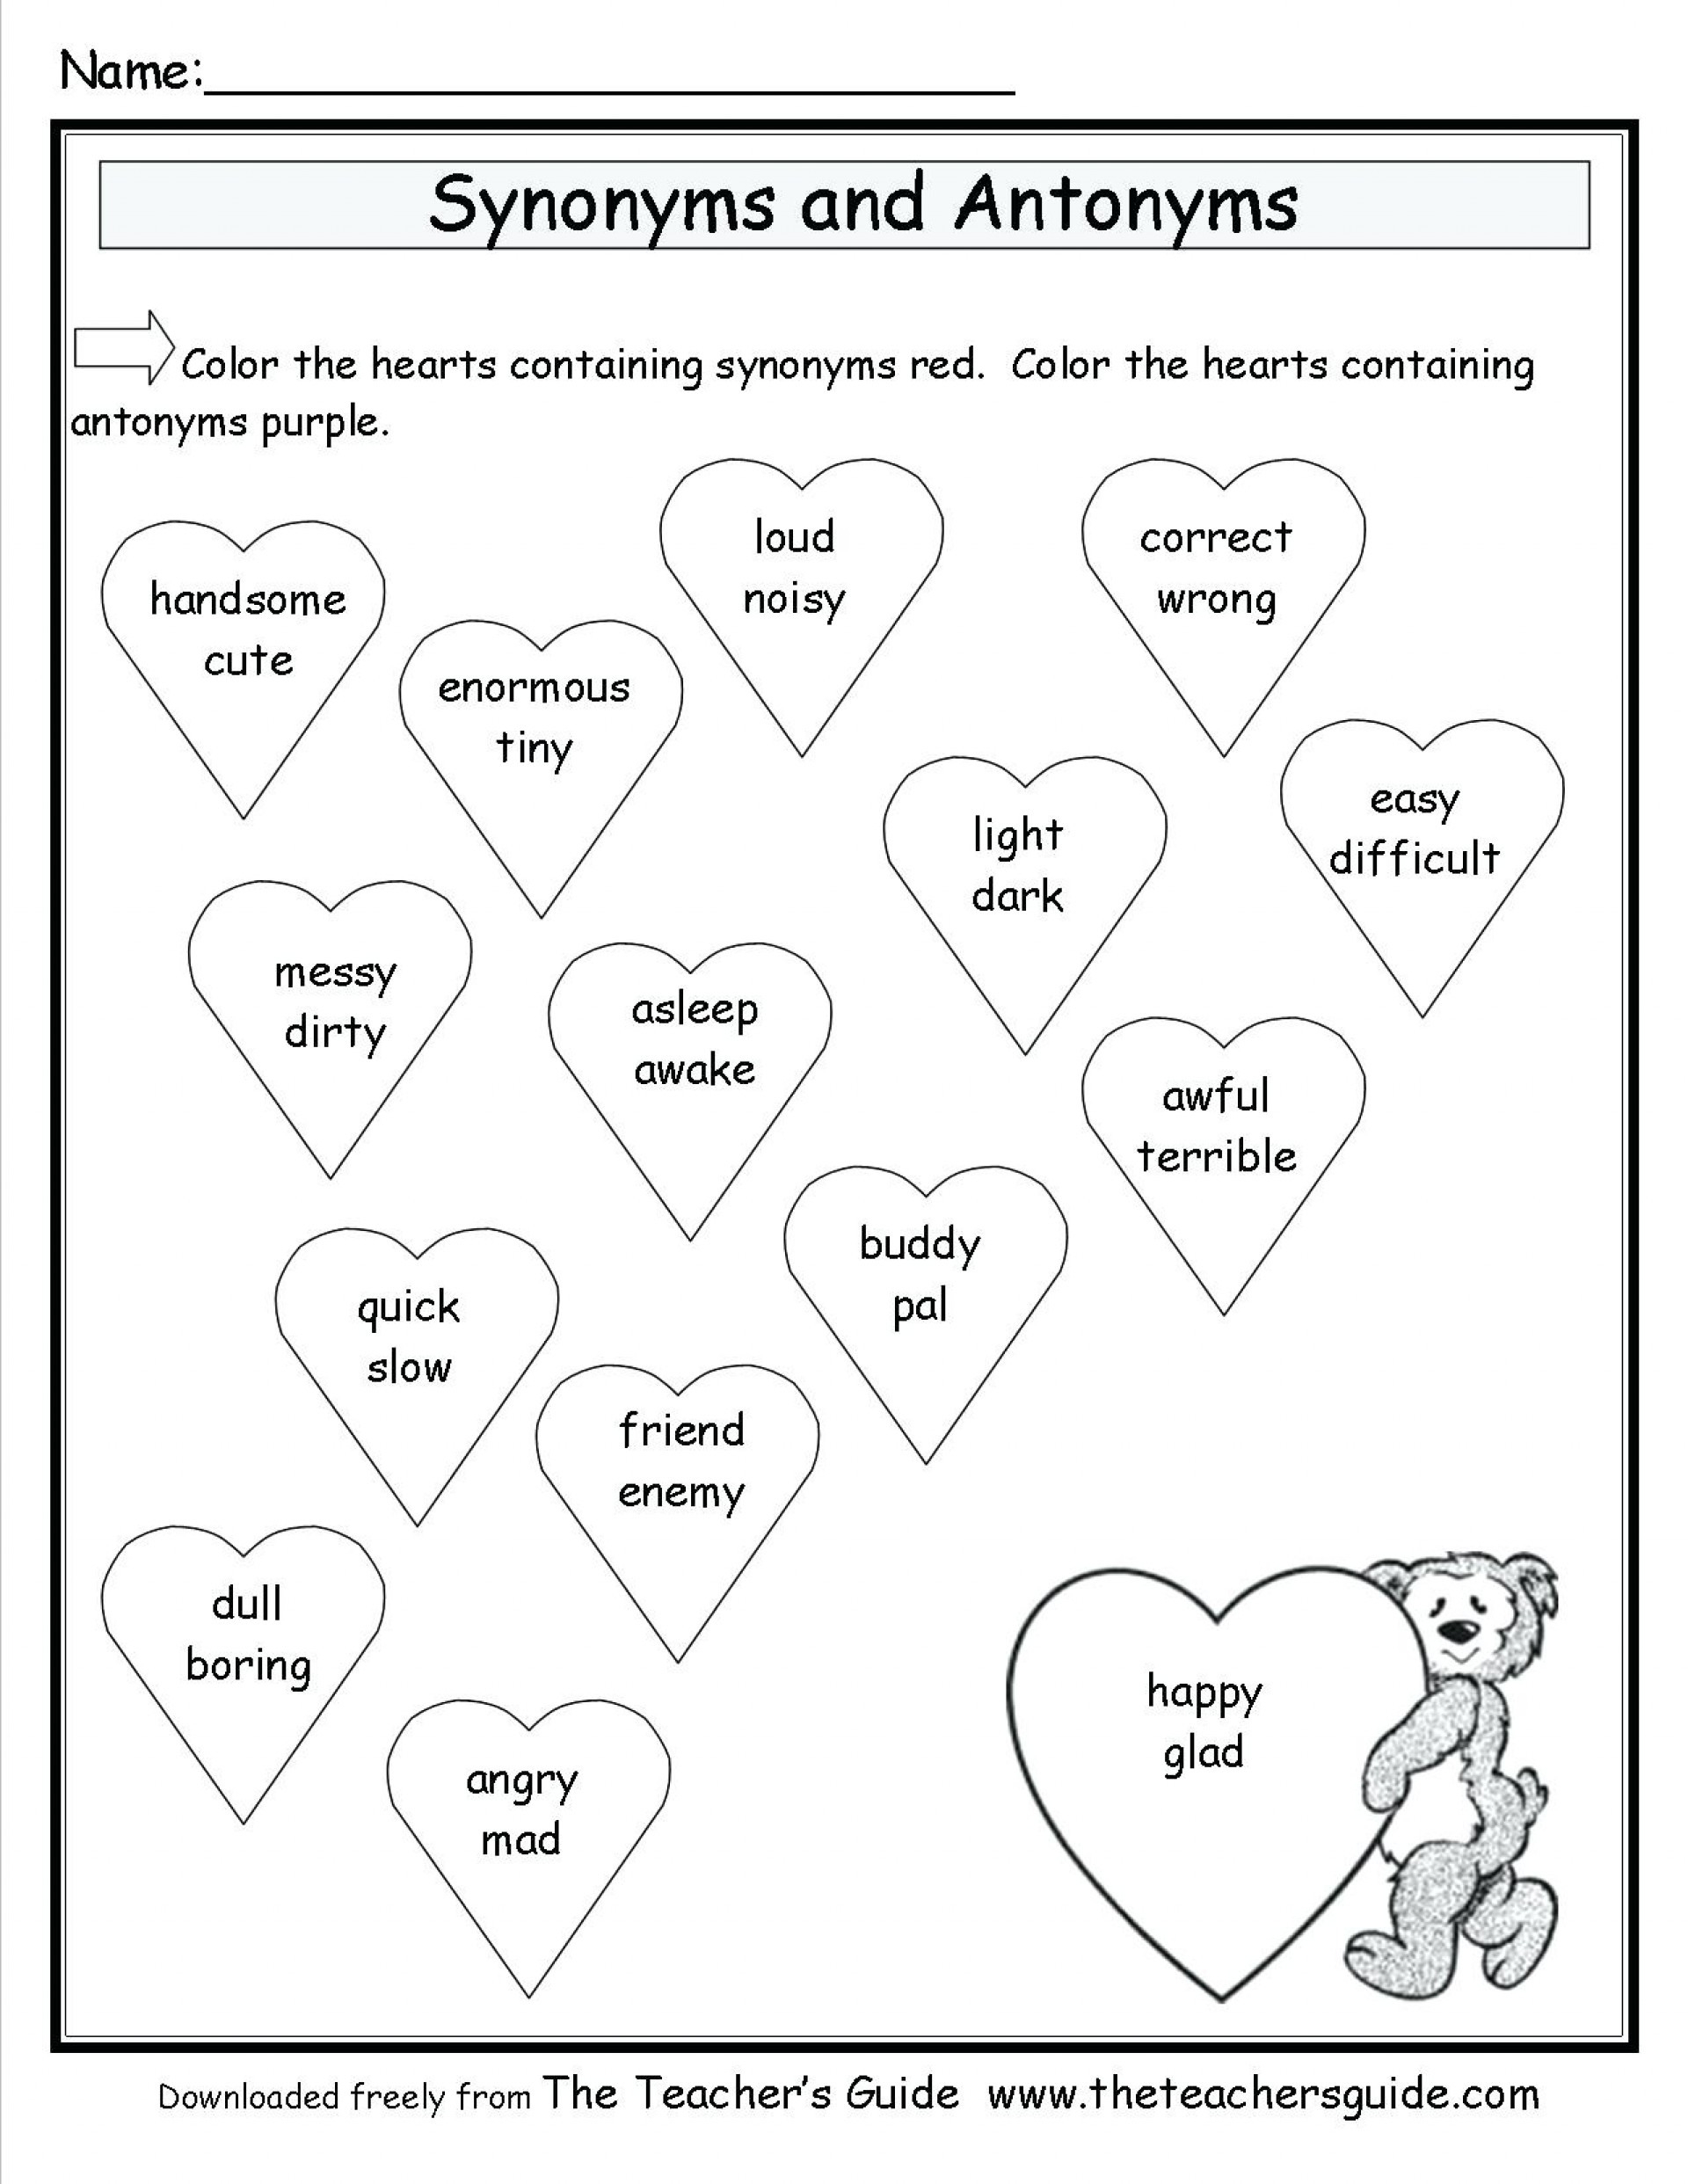 022 Printable Word Make Your Own Search For Kids Free